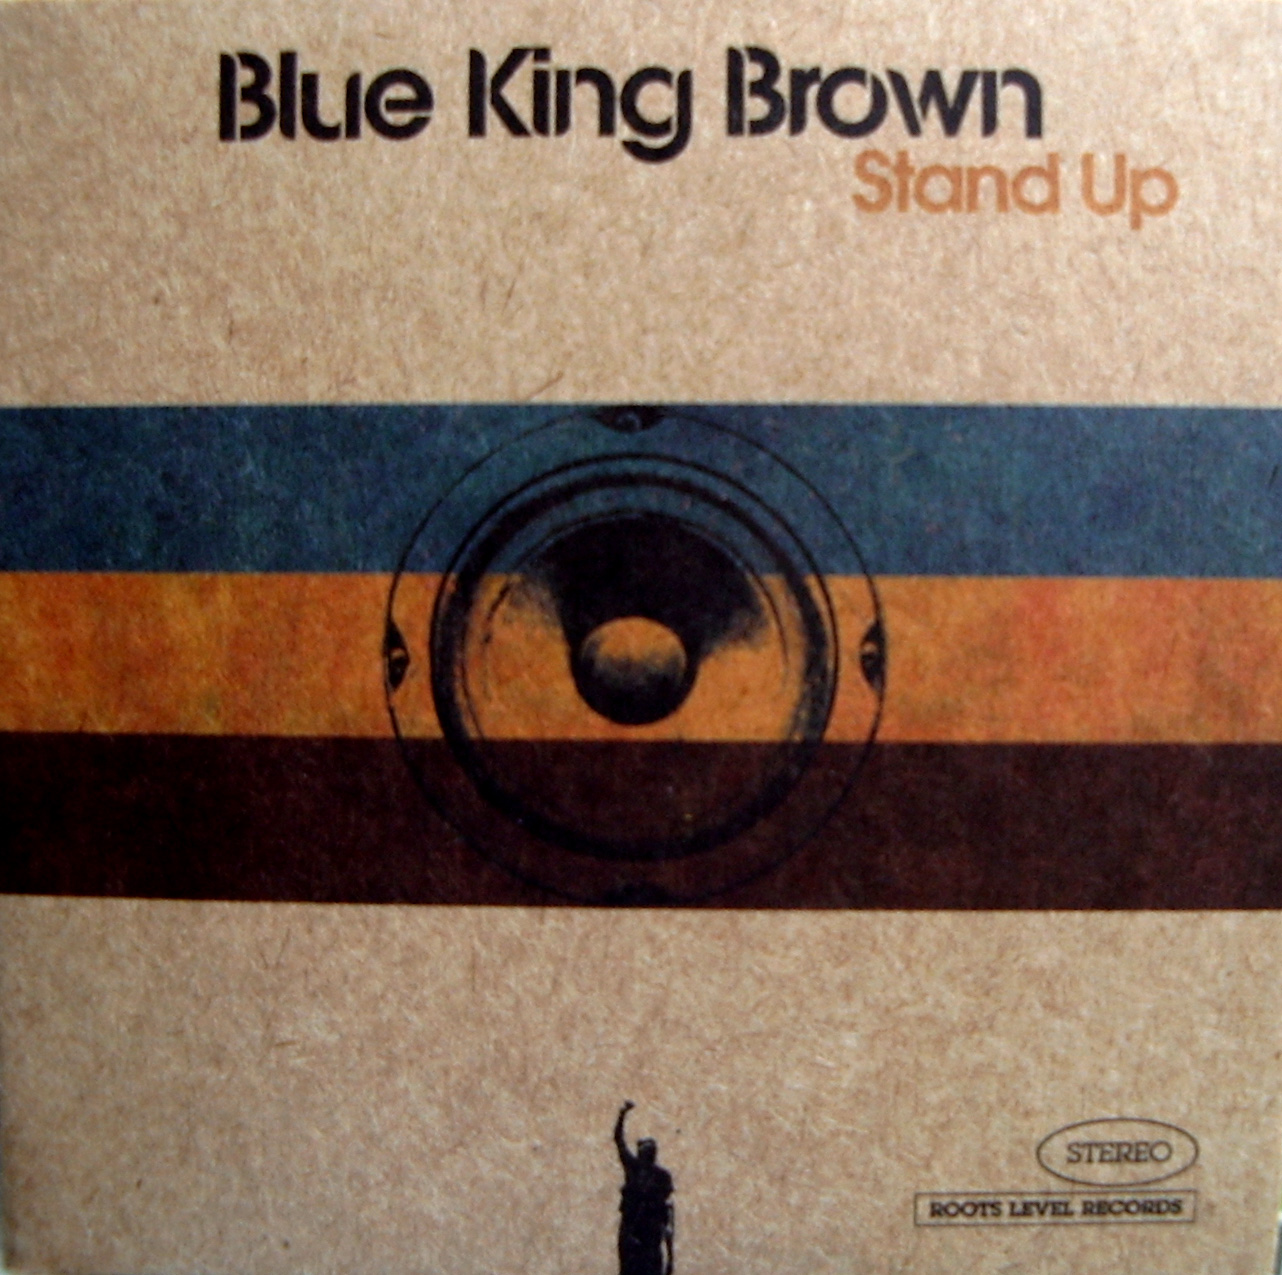 STAND UP - LP